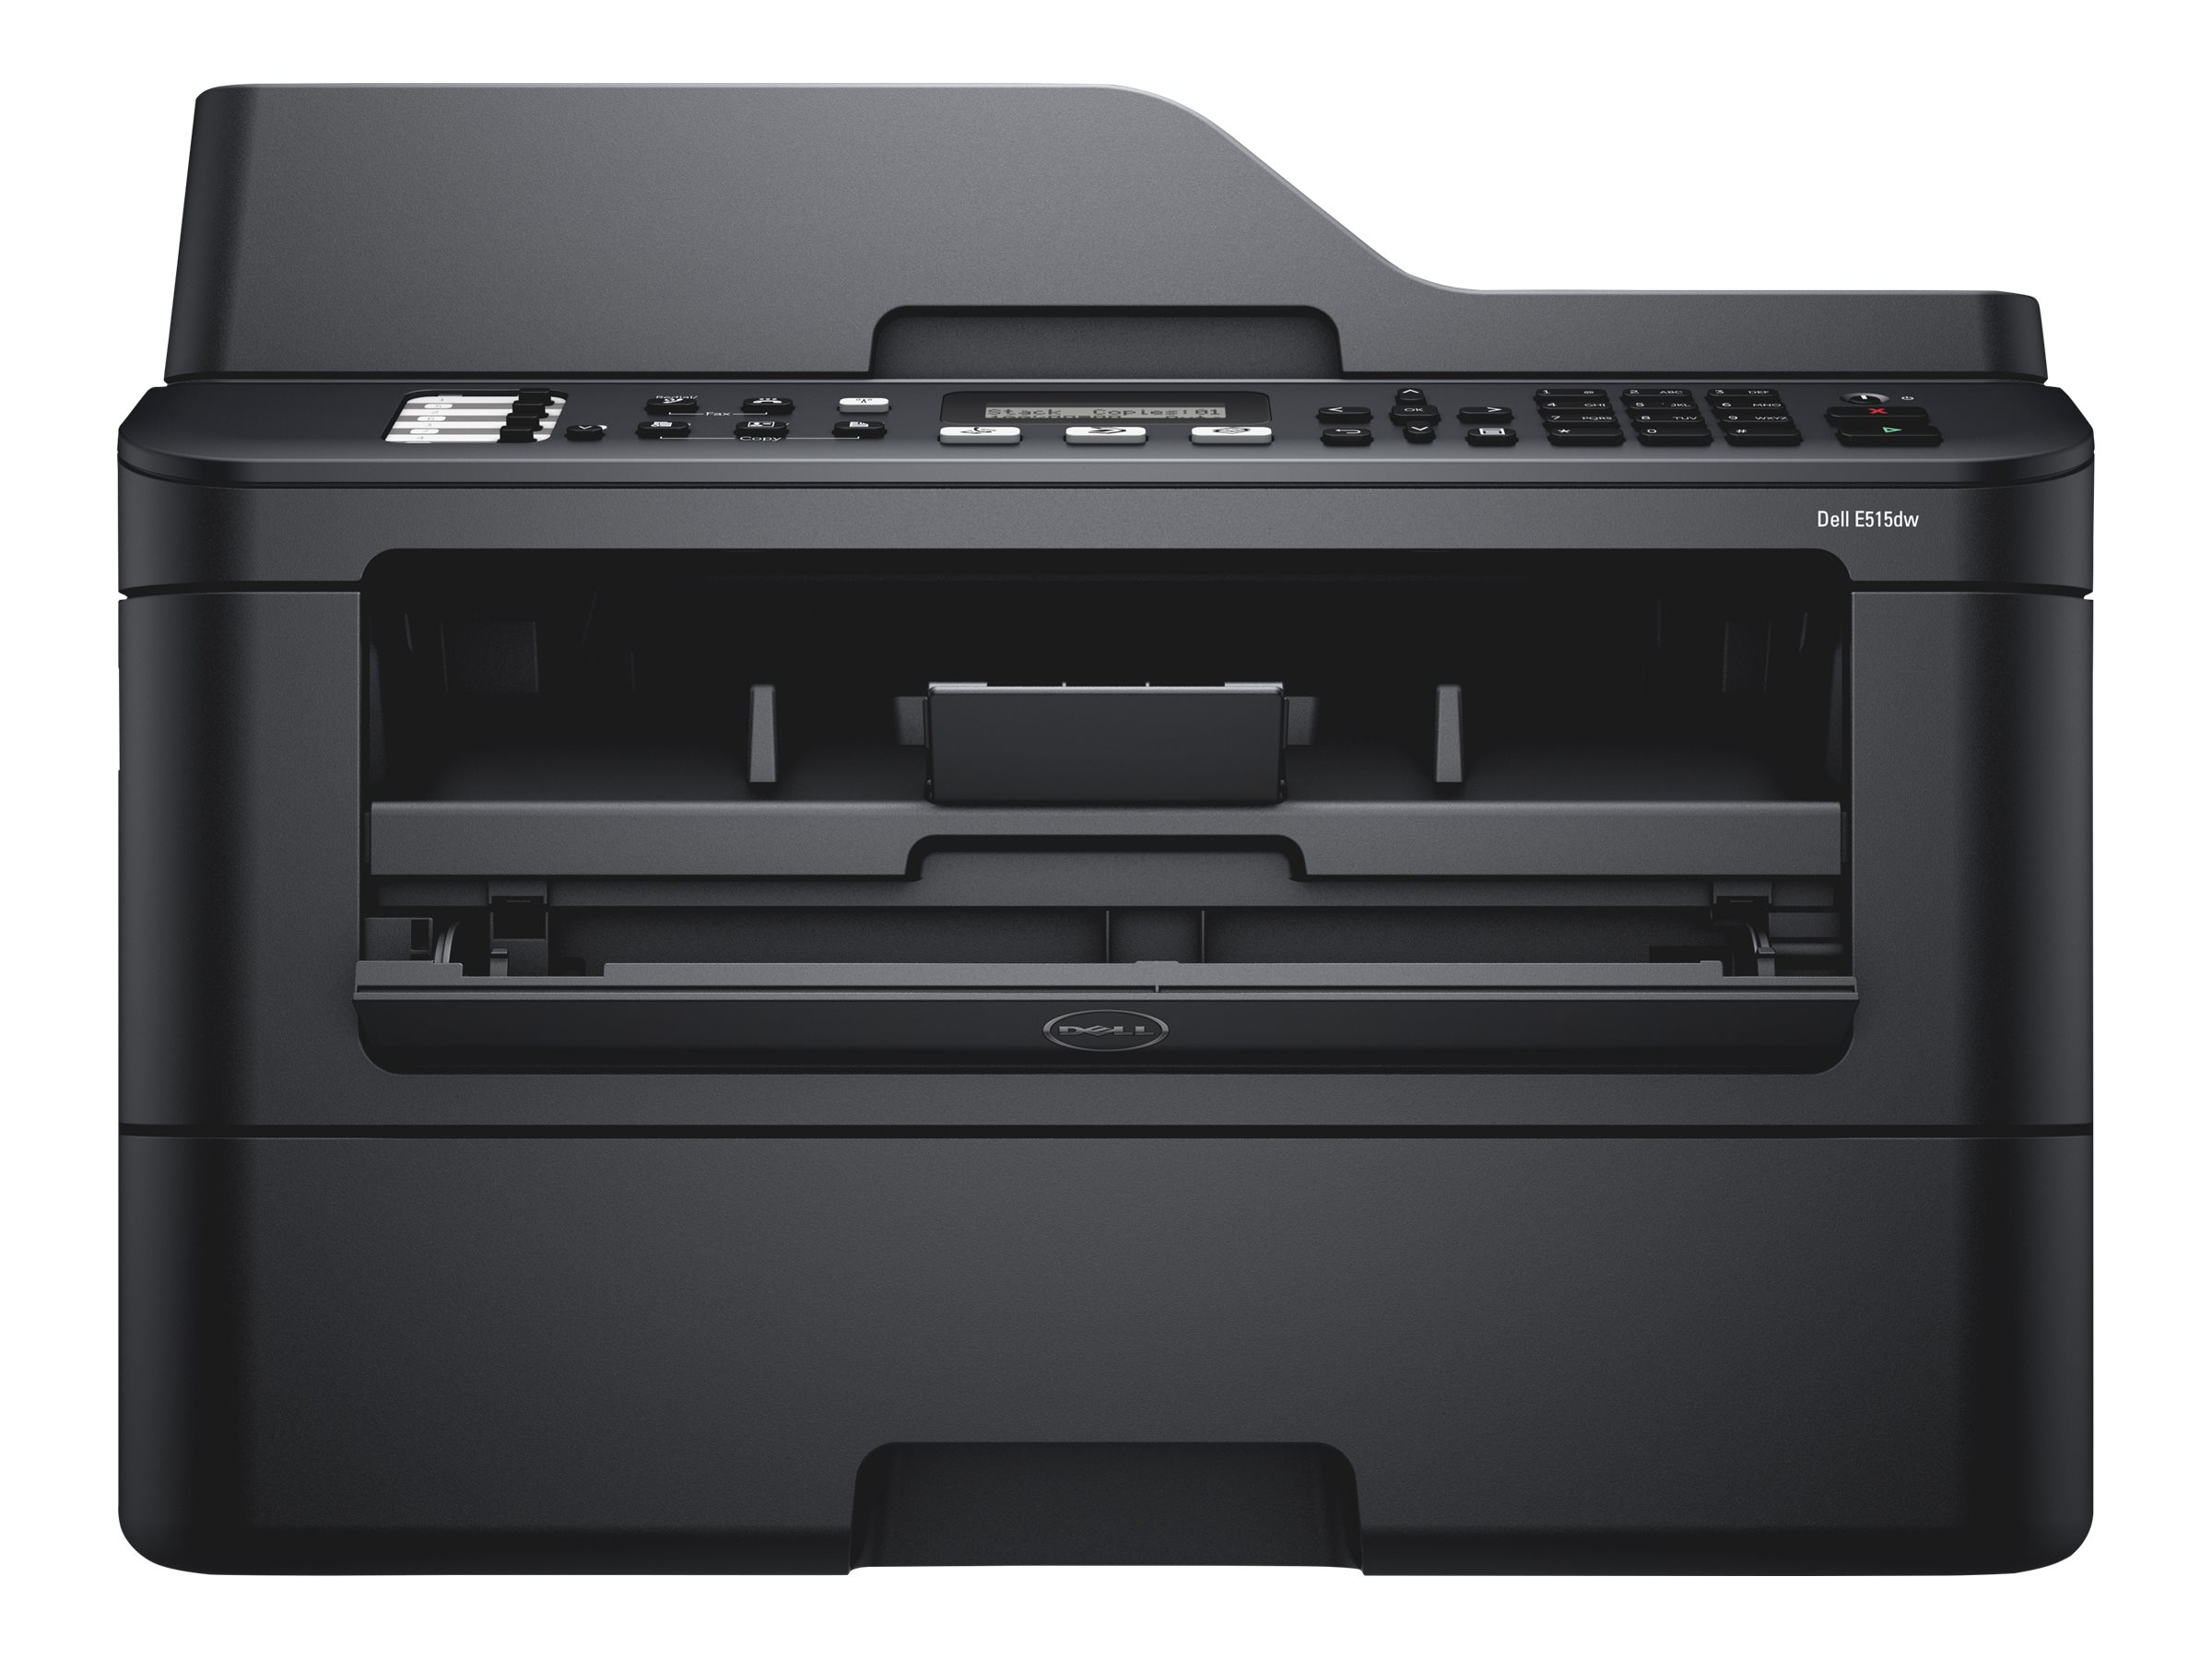 Dell E515dw Black & White Laser Multifunction Printer (210-AEHK), E515DW